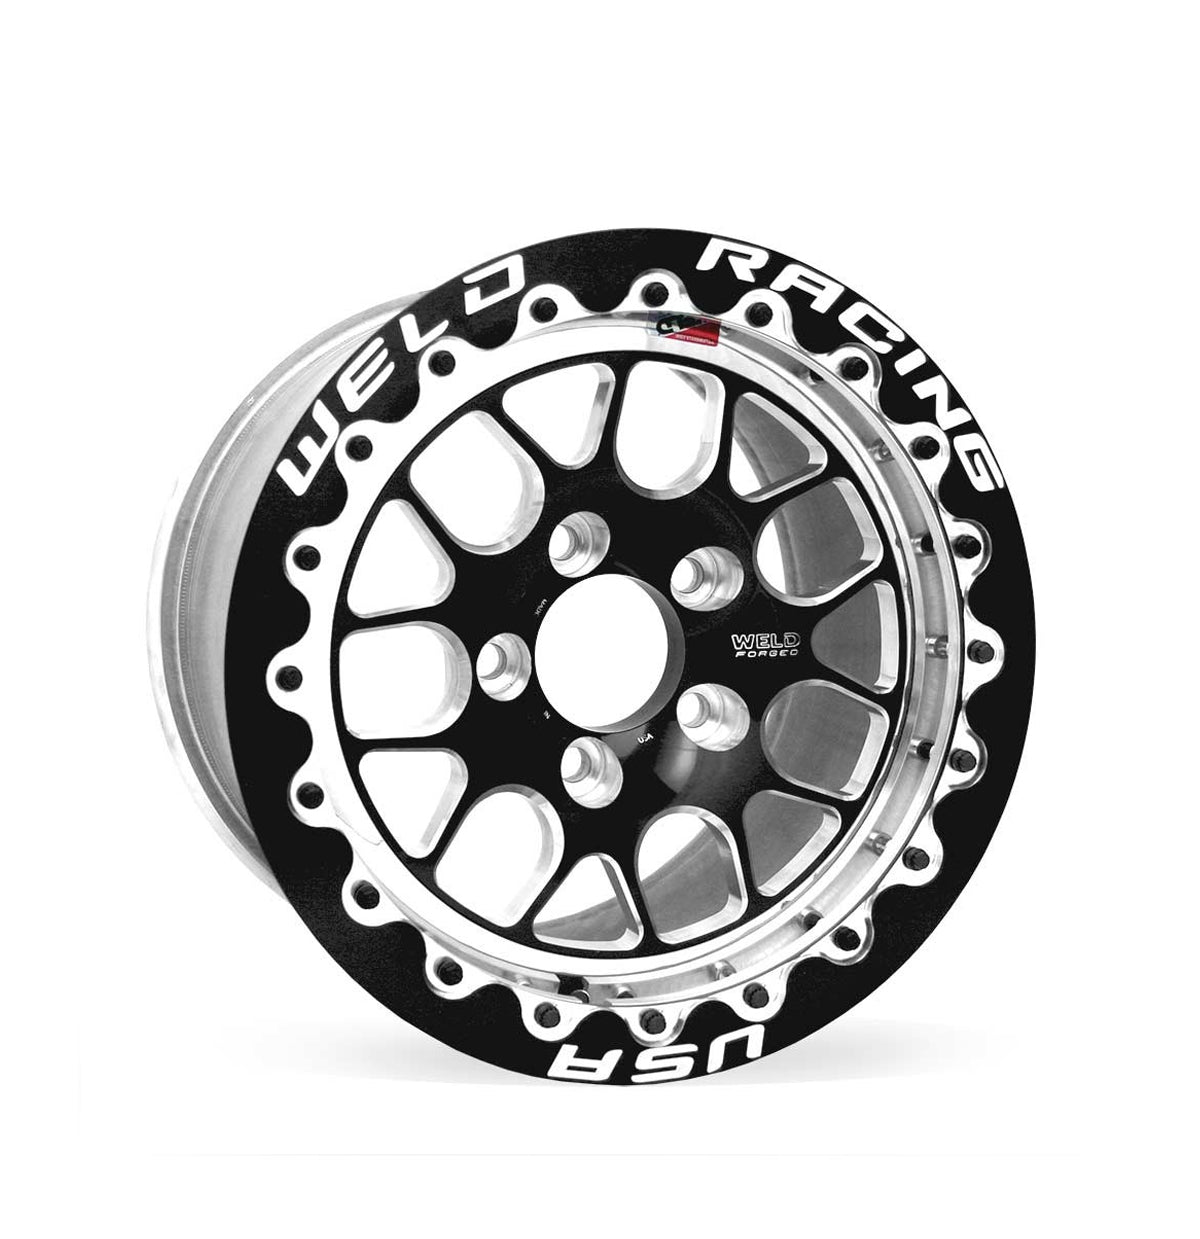 "Weld Wheels RT-S S77 BEADLOCK -- 15x10.33 5x4.5 7.5"" BS +47mm -- Black REAR for Toyota Supra"